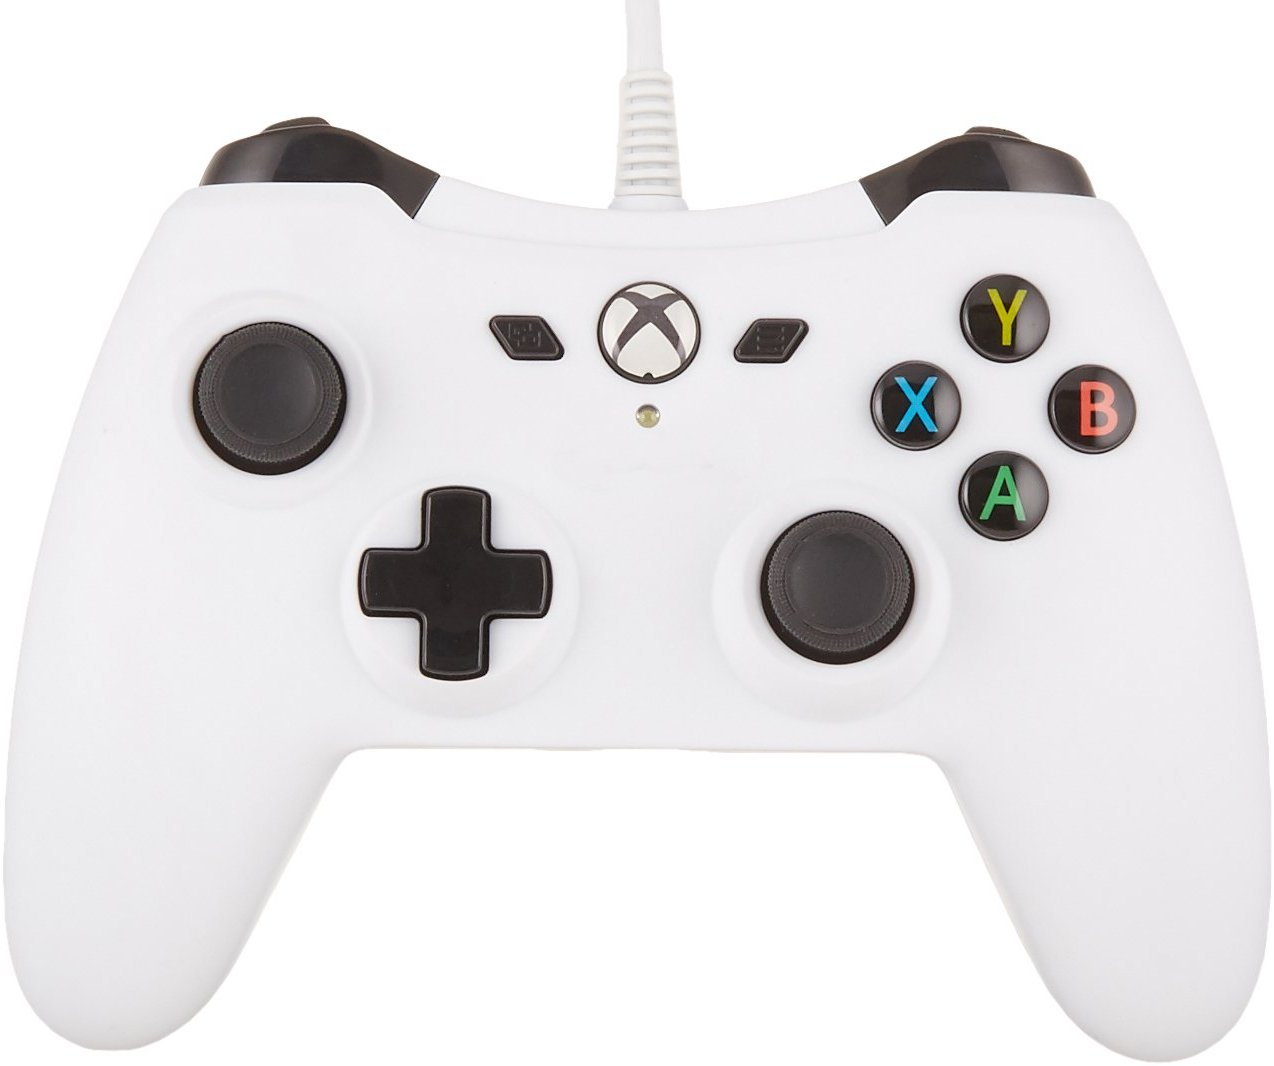 AmazonBasics Xbox One Wired Controller for sale in Jamaica | JAdeals.com